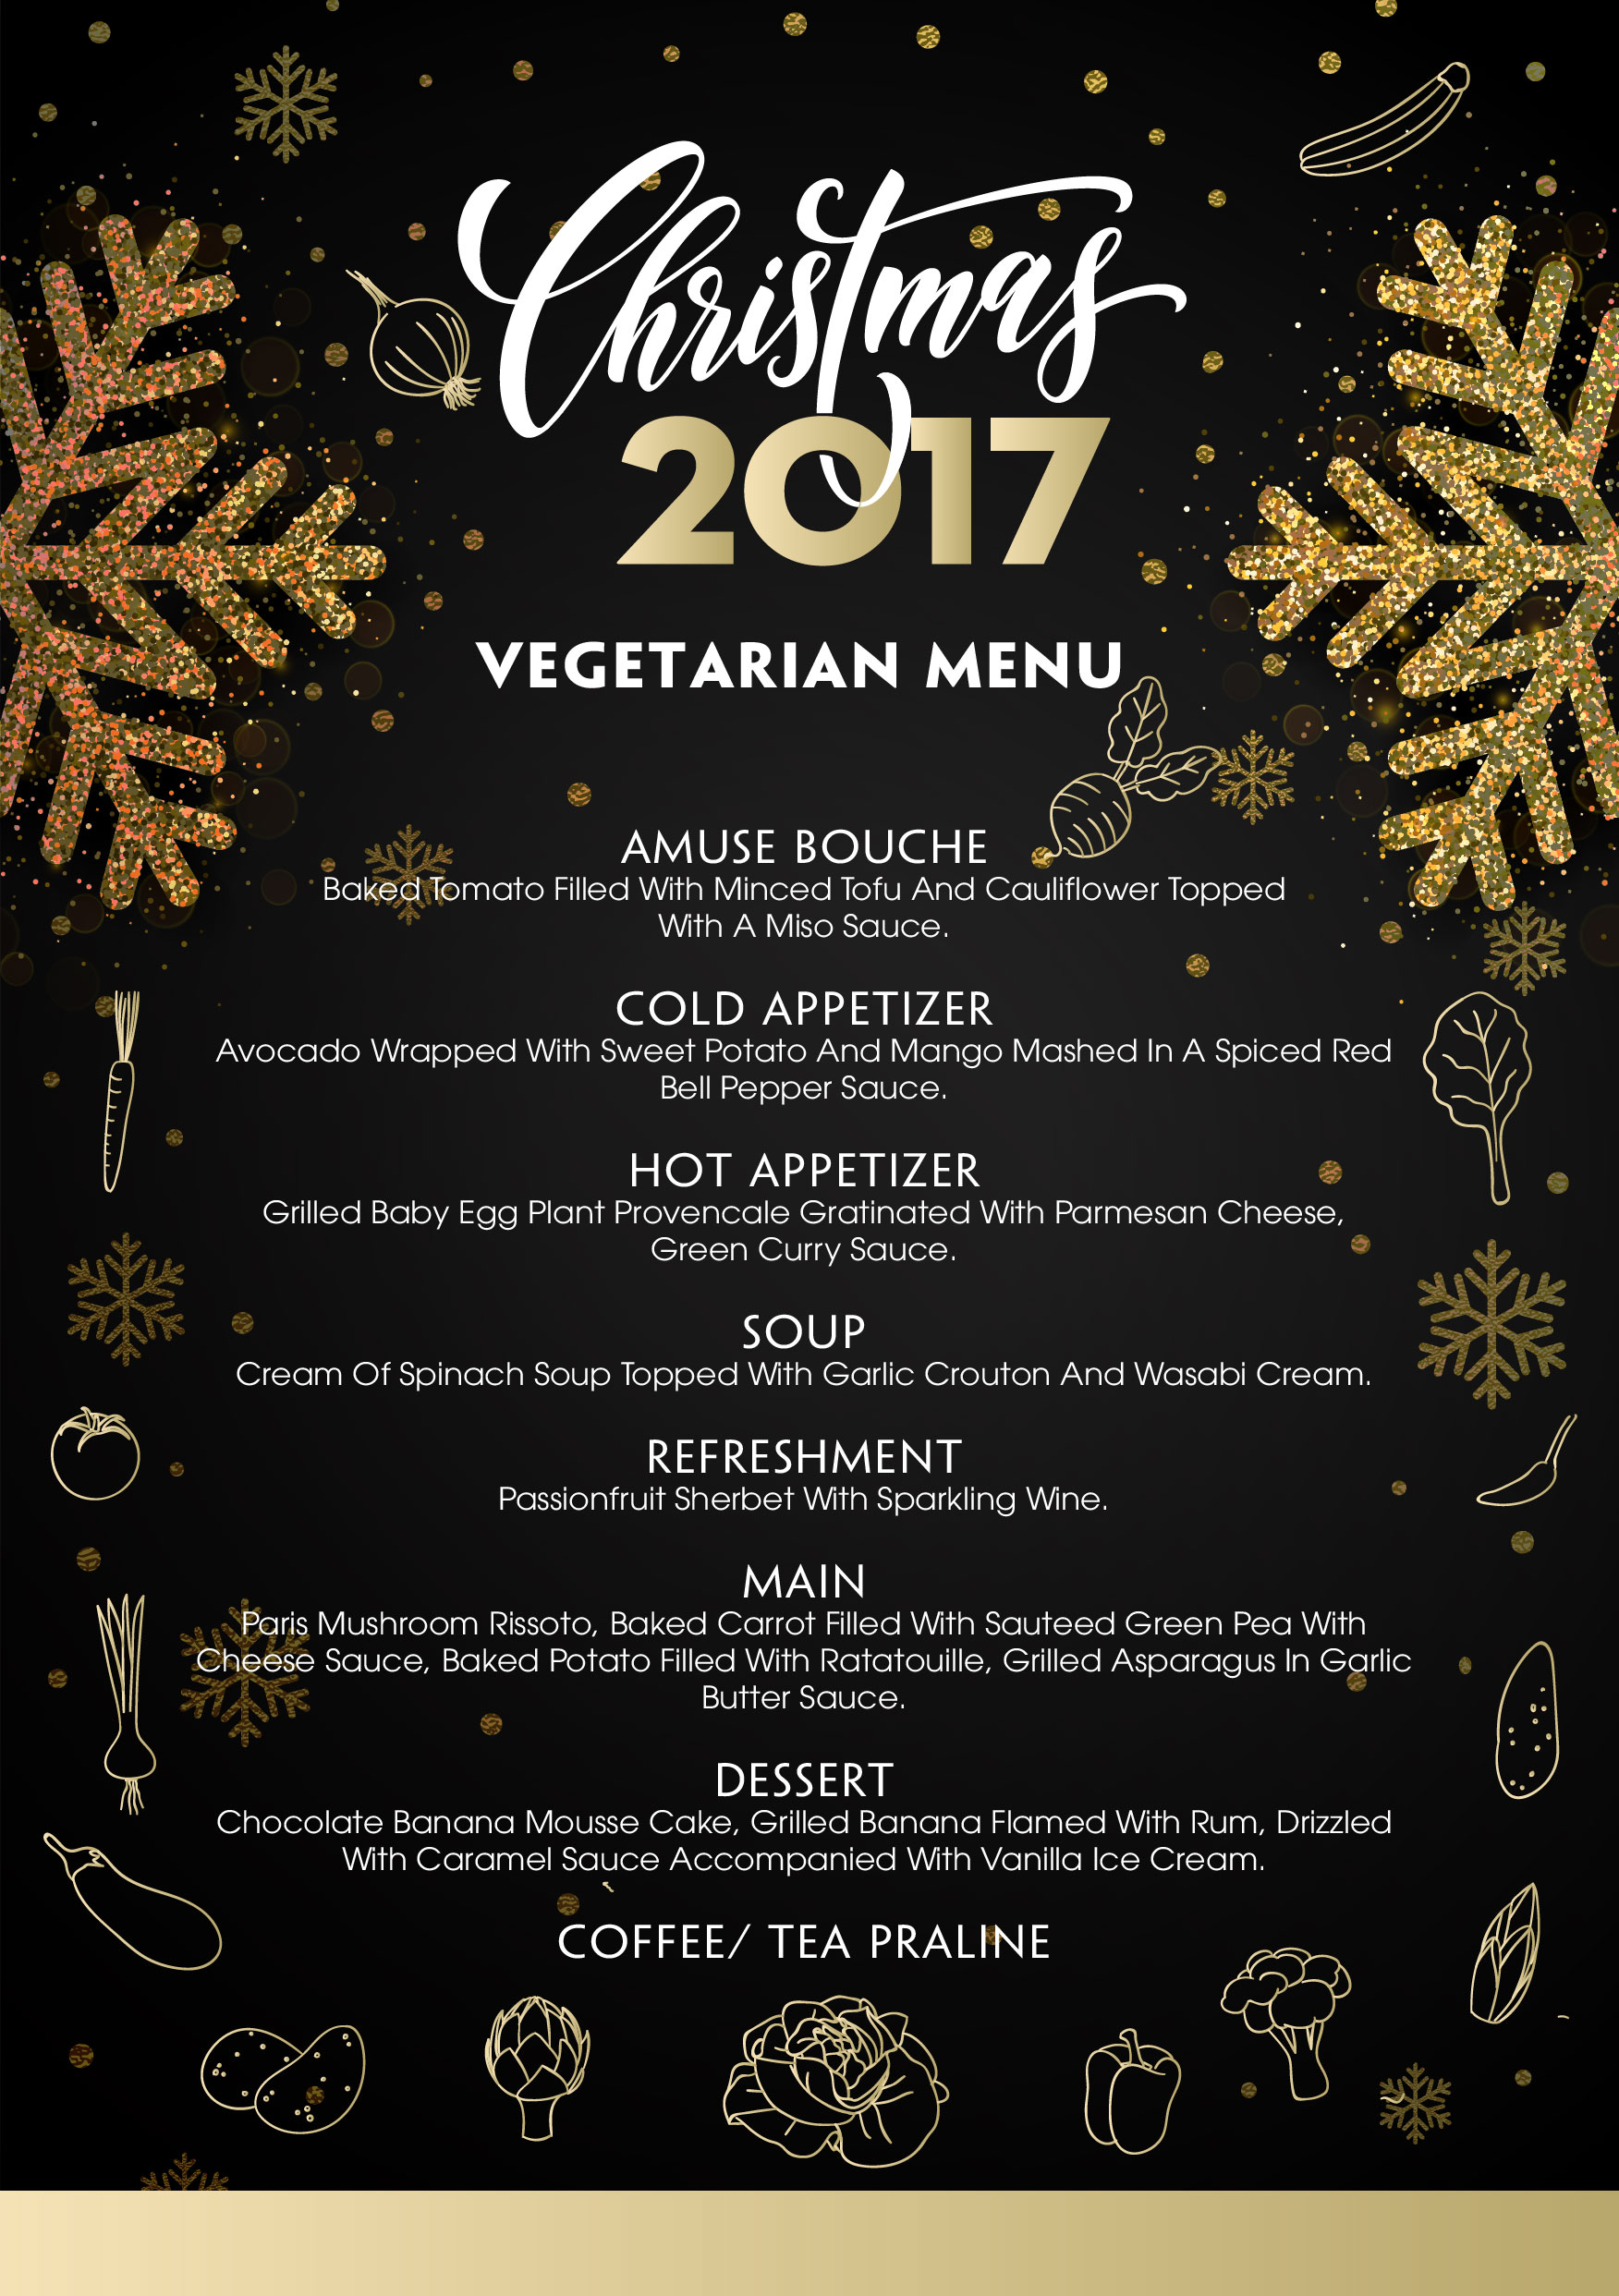 Christmas 2017 vegetarian menu